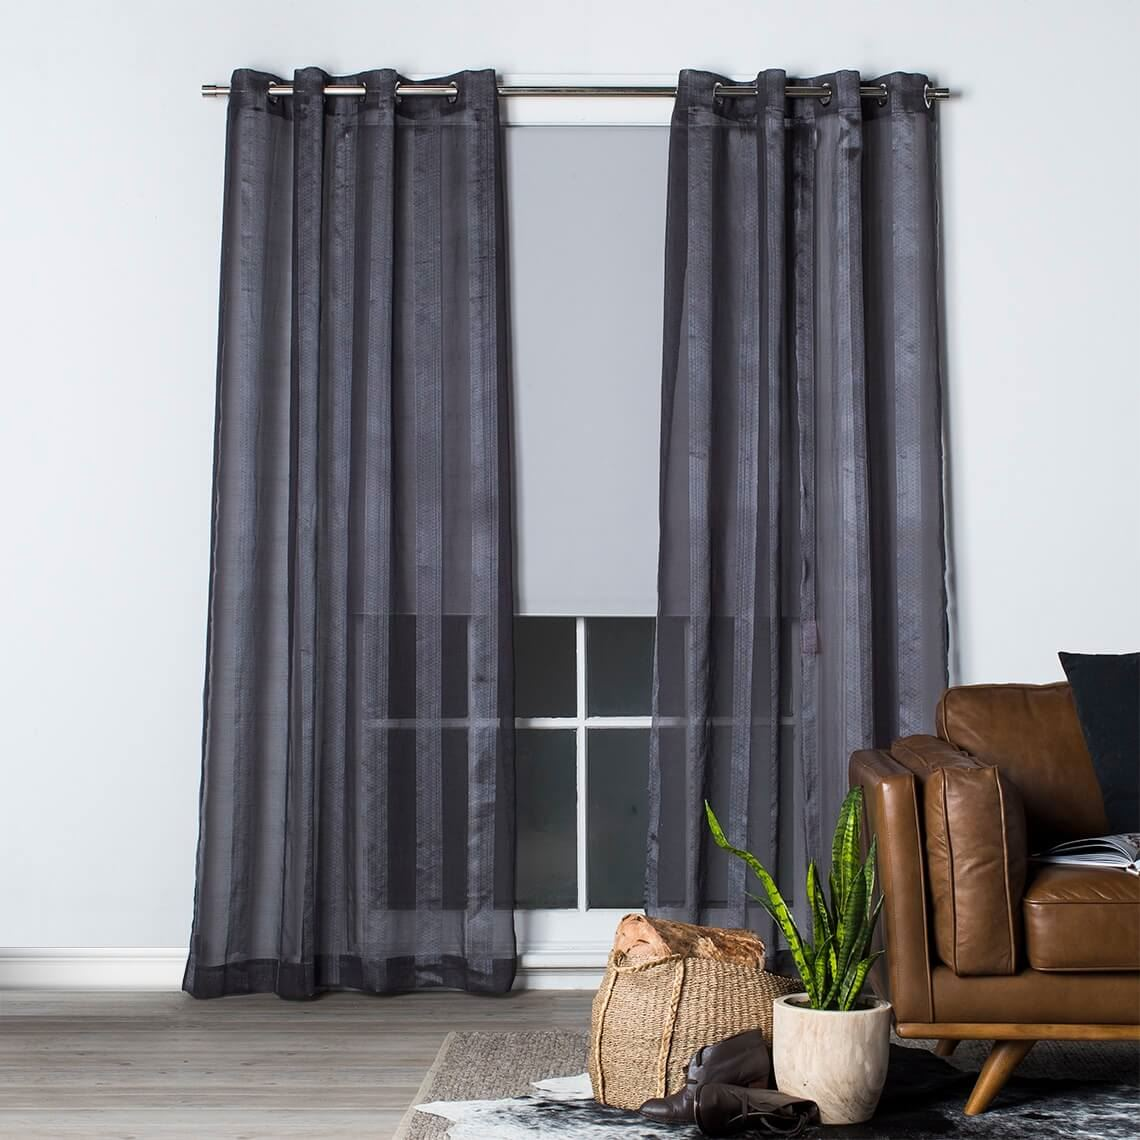 Houston Sheer Eyelet Curtain Size W 140cm x D 1cm x H 230cm in Charcoal 100% Polyester/Stainless Steel Freedom by Freedom, a Curtains for sale on Style Sourcebook